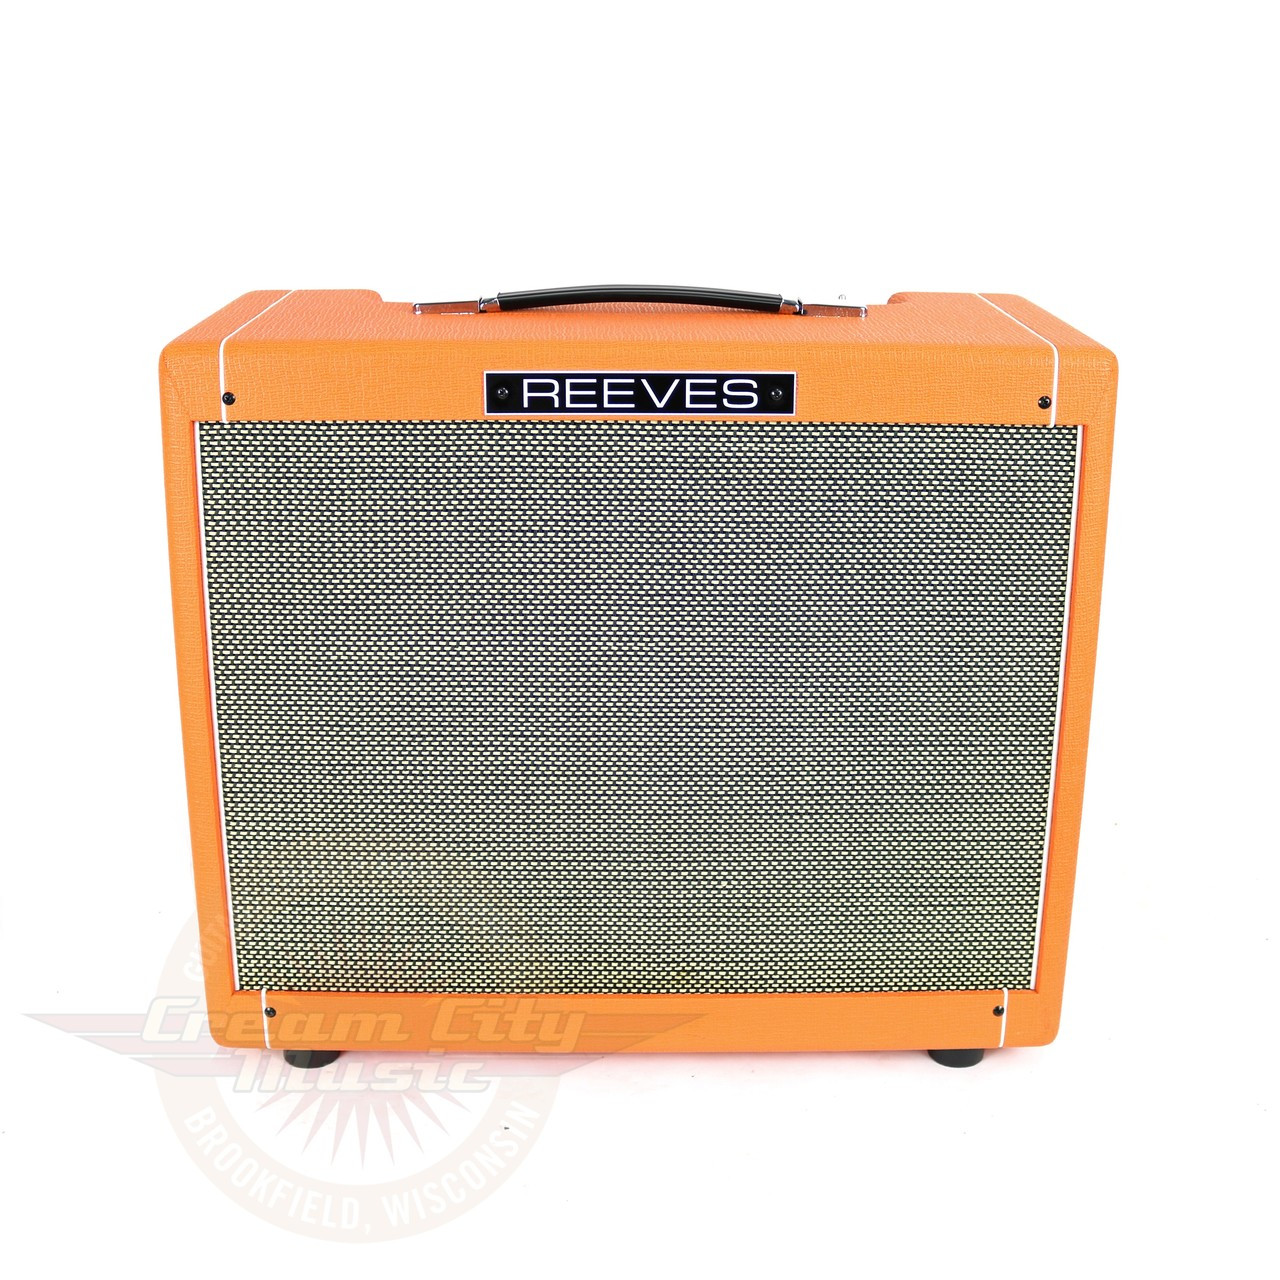 Used 2015 Reeves Custom 12 12w 1x12 Boutique Tube Combo Amp Cream Audio Amplifier